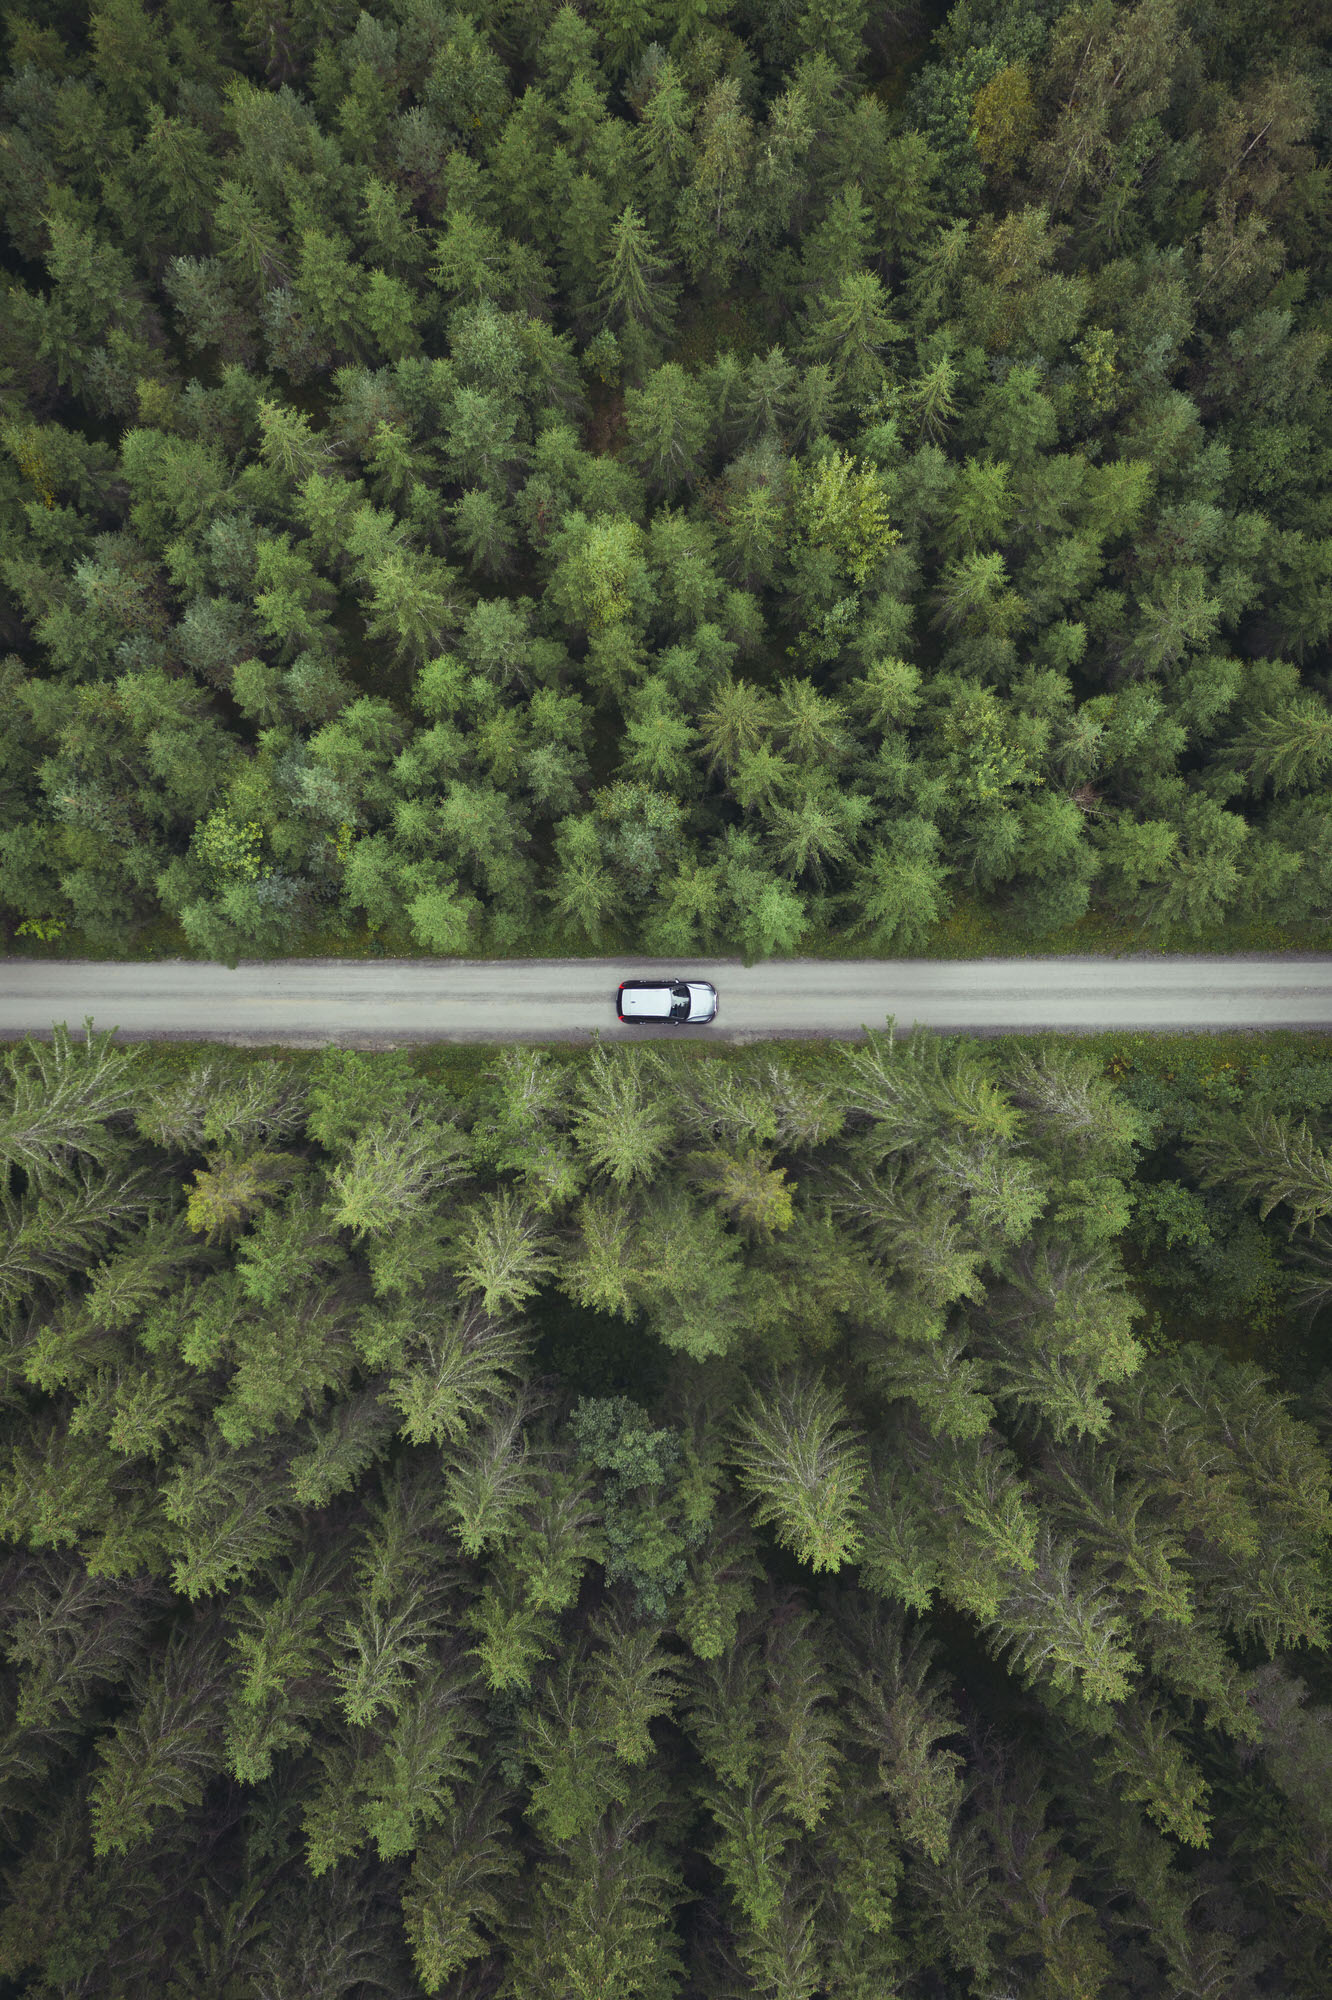 Aerial shot of Volvo XC40 in the rural forests of Hamar, Norway